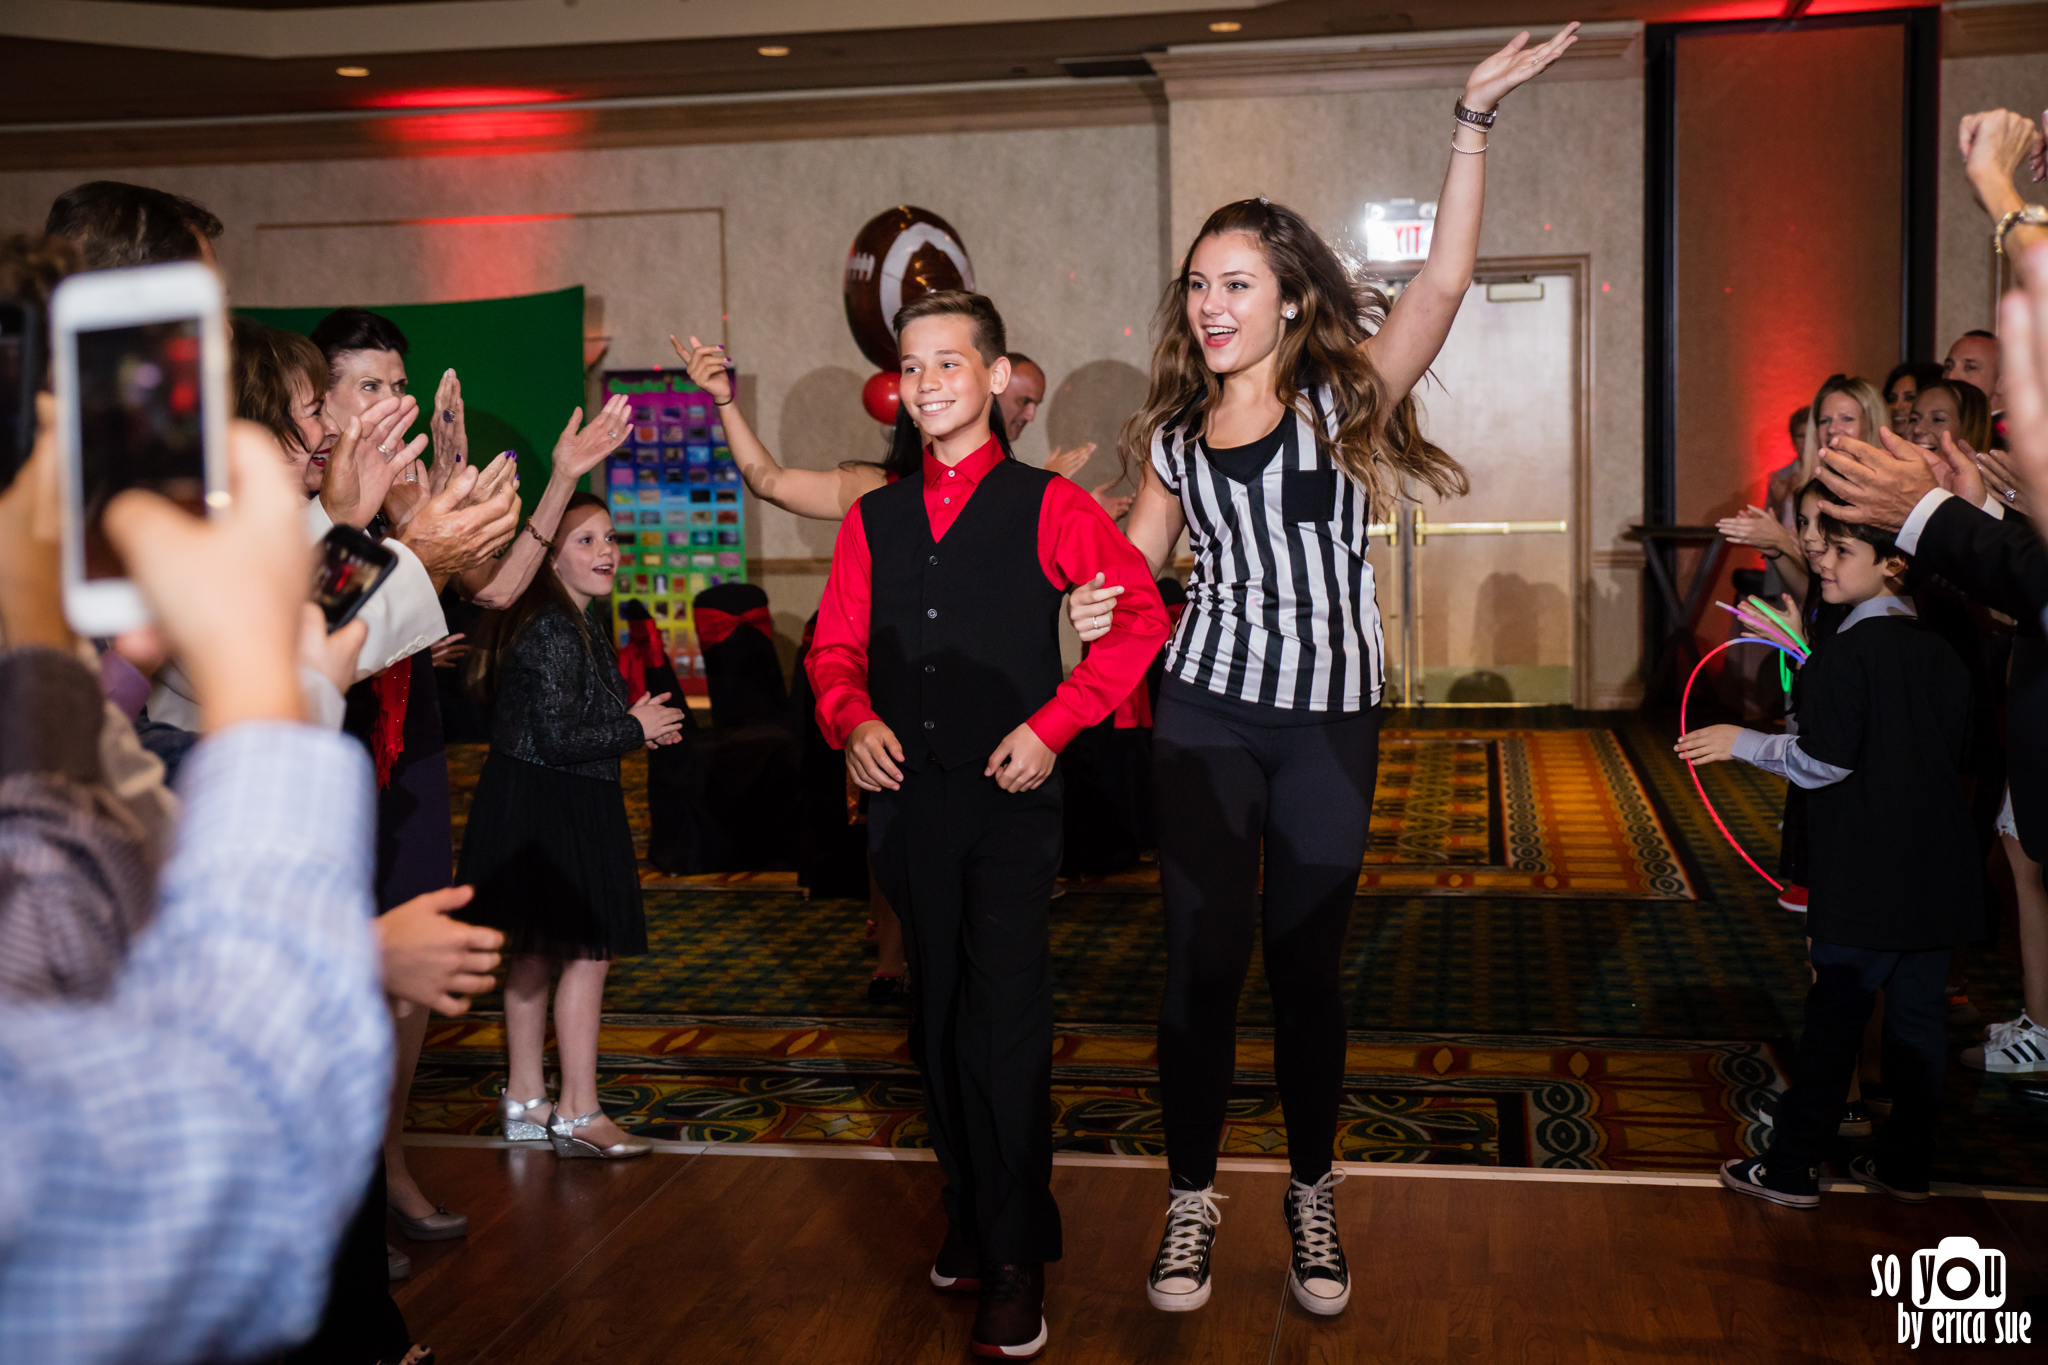 bar-mitzvah-photographer-parkland-fl-marriott-6408.jpg